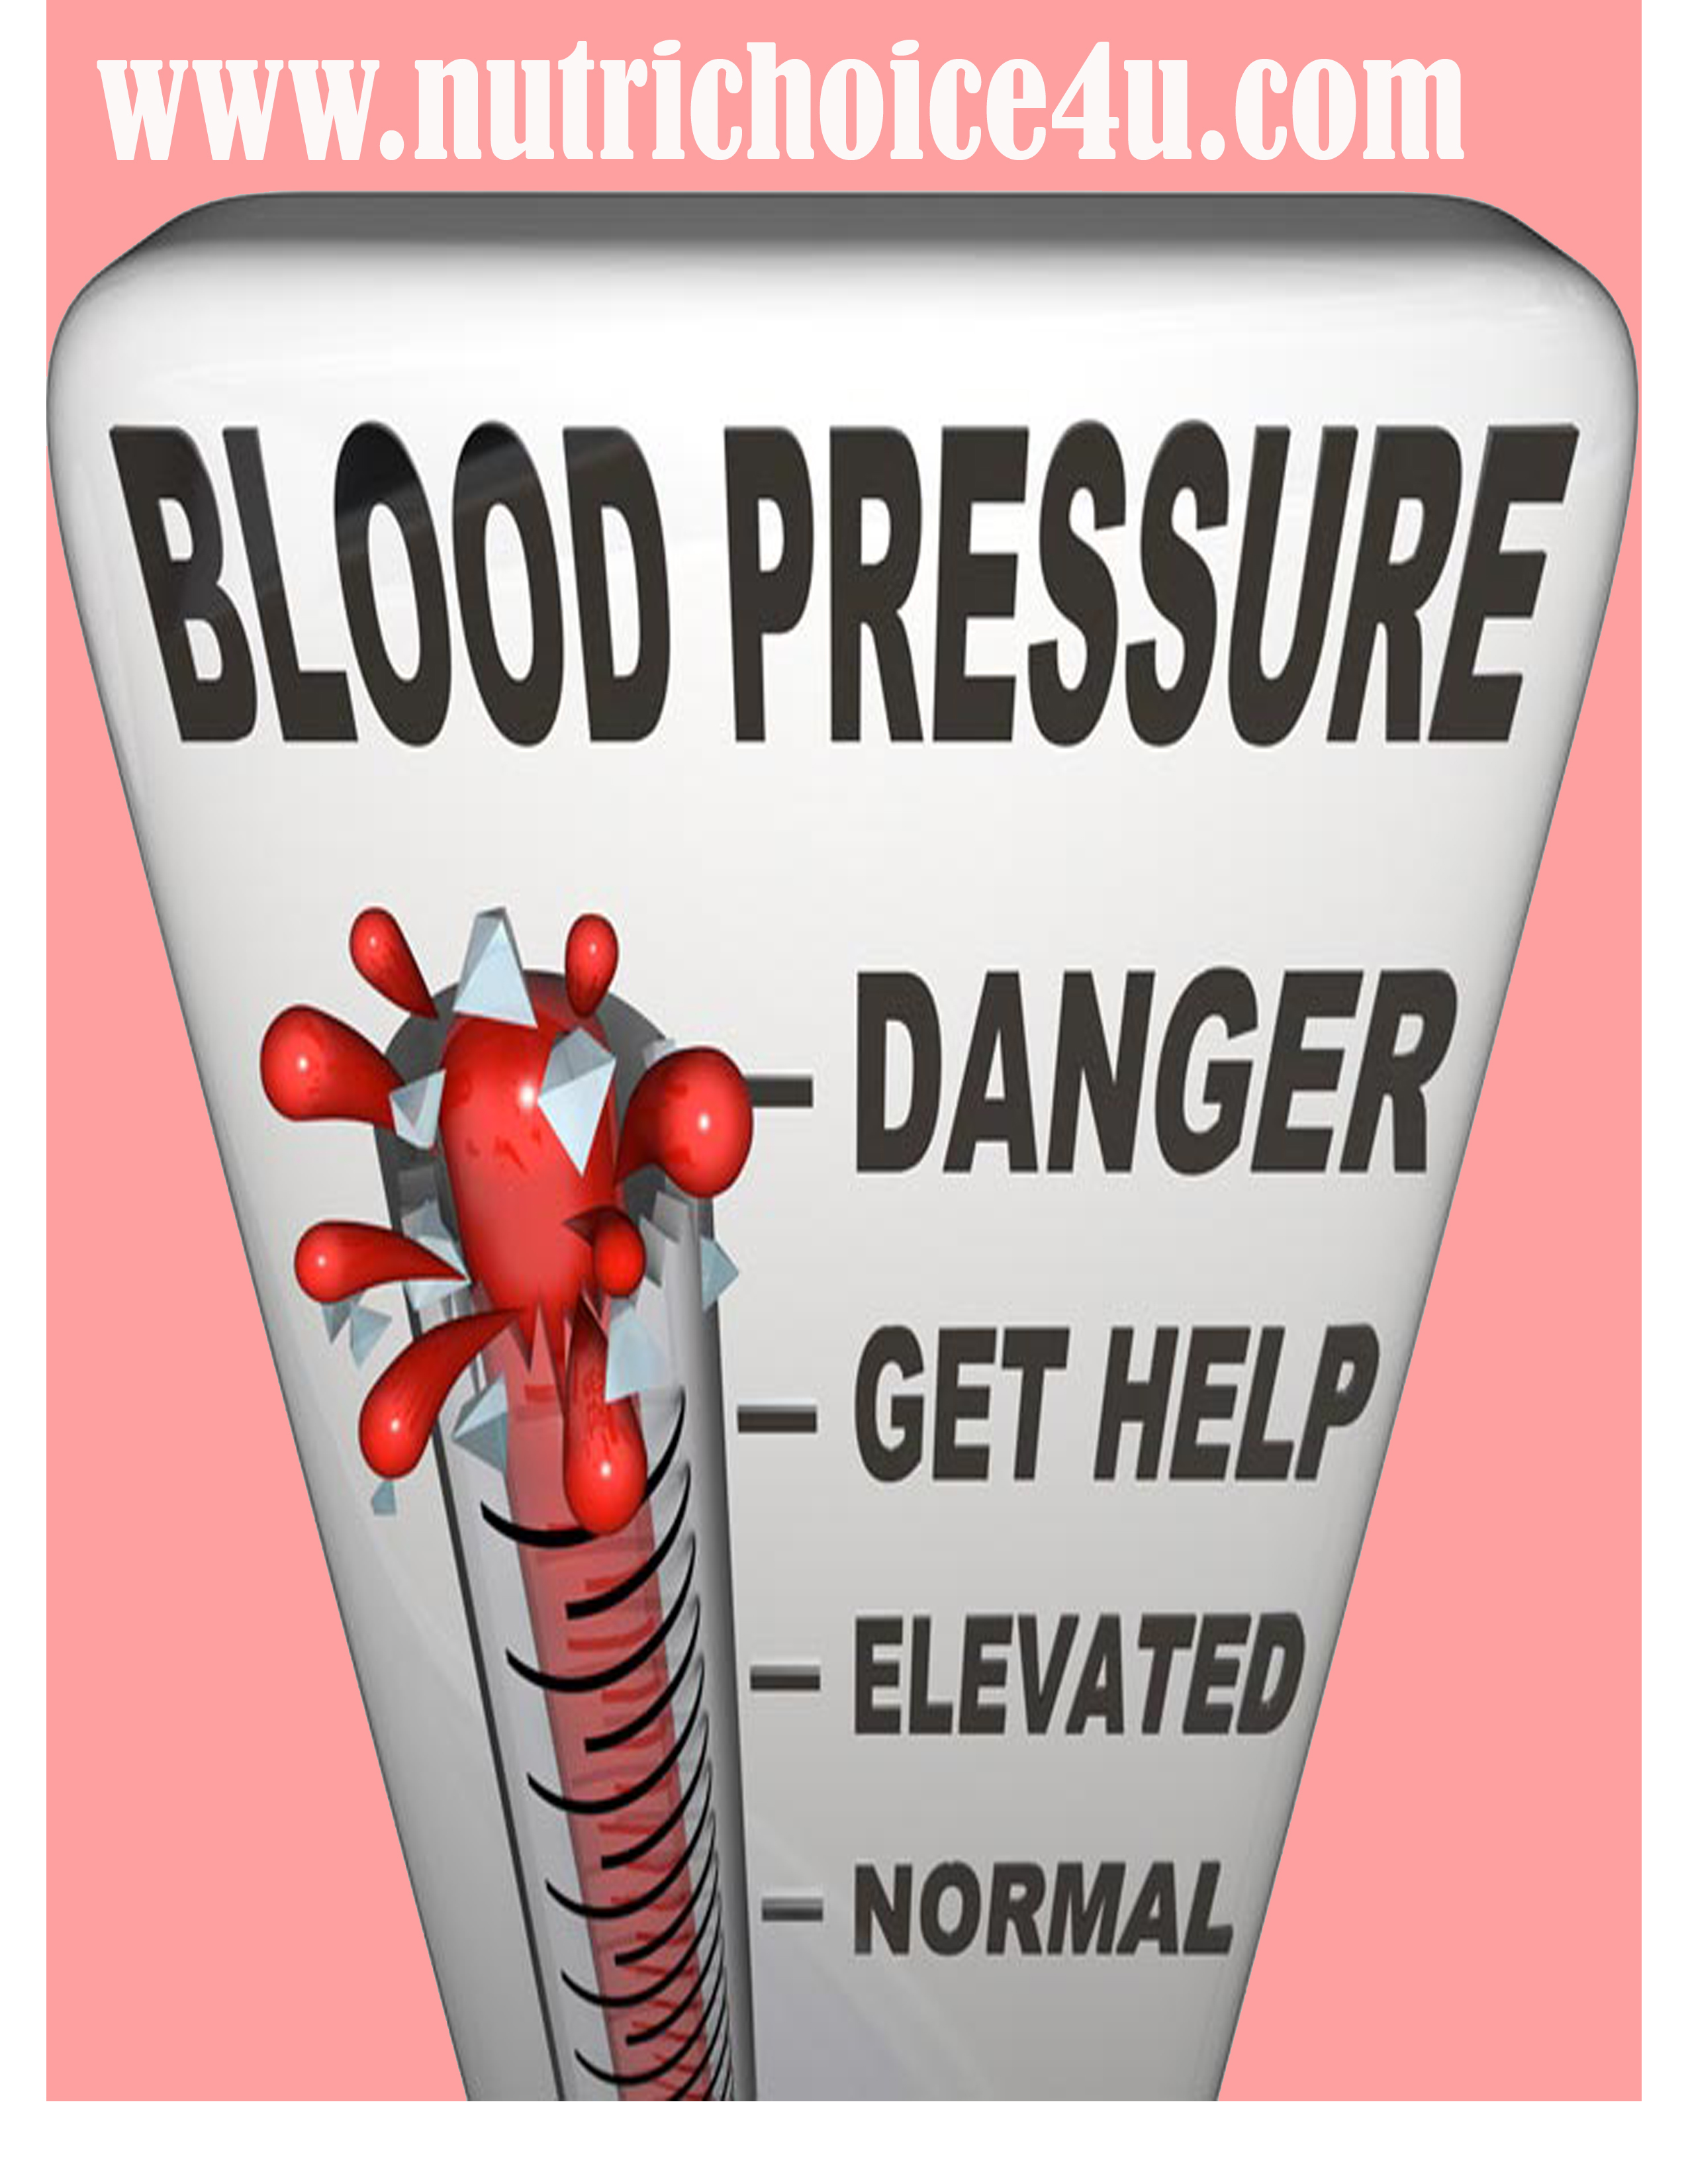 Tips to control high blood pressure.